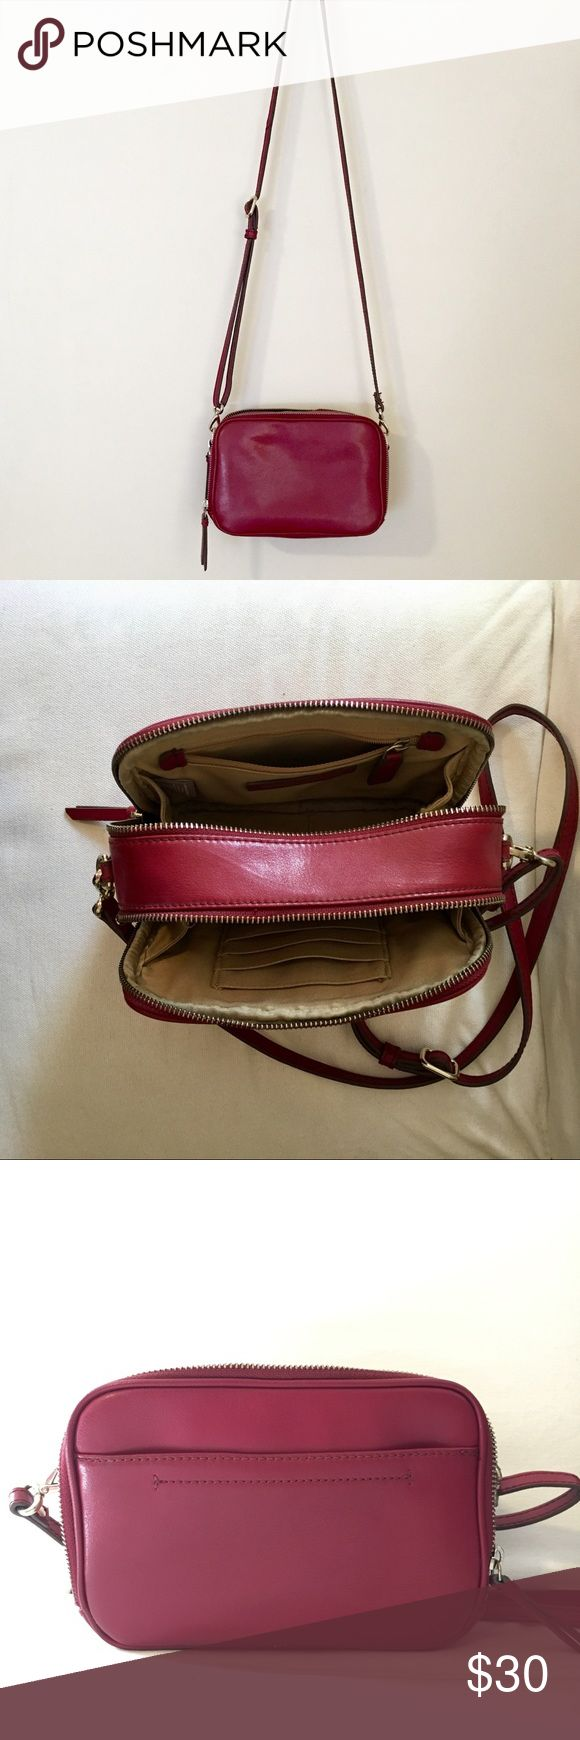 "Banana Republic red leather purse 8"" x 5.5"". Two zip sections. Built in credit card holders, small zip pocket. Adjustable leather strap. 100% split hide cow leather Banana Republic Bags"